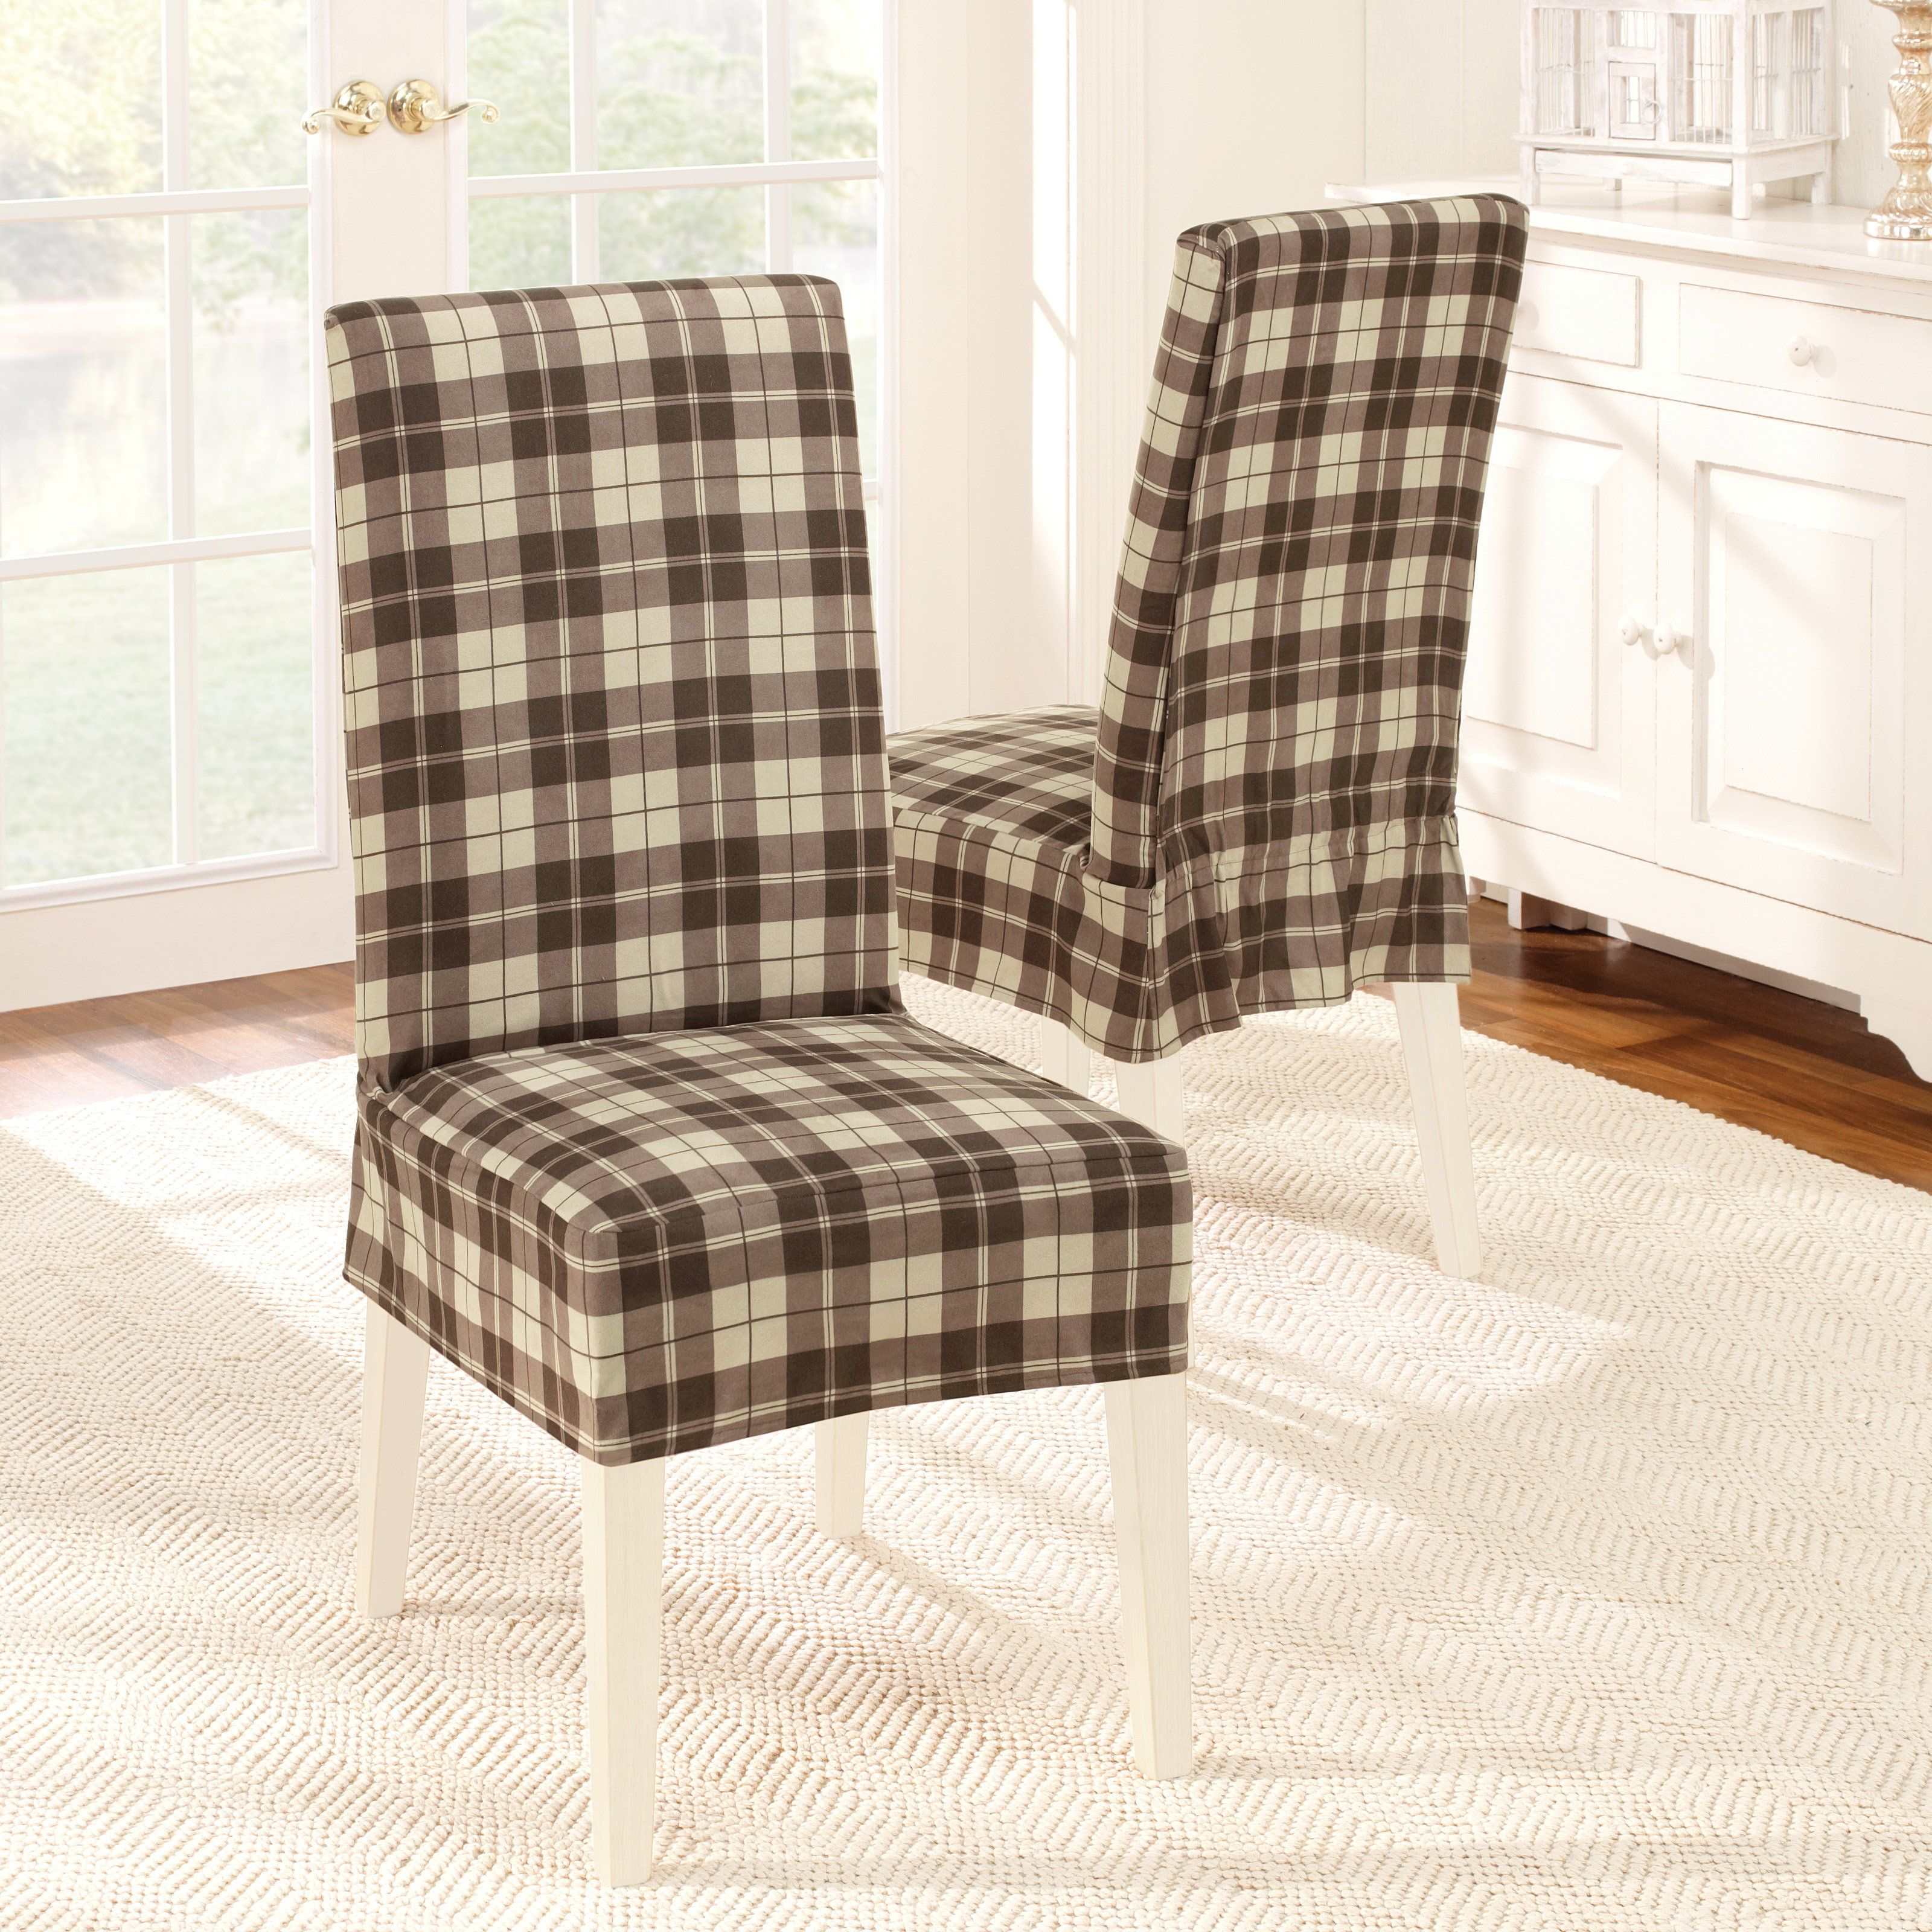 Dining Room Chair Covers For Home Dining Room Chair Covers Dining Room Chair Slipcovers Dining Chairs